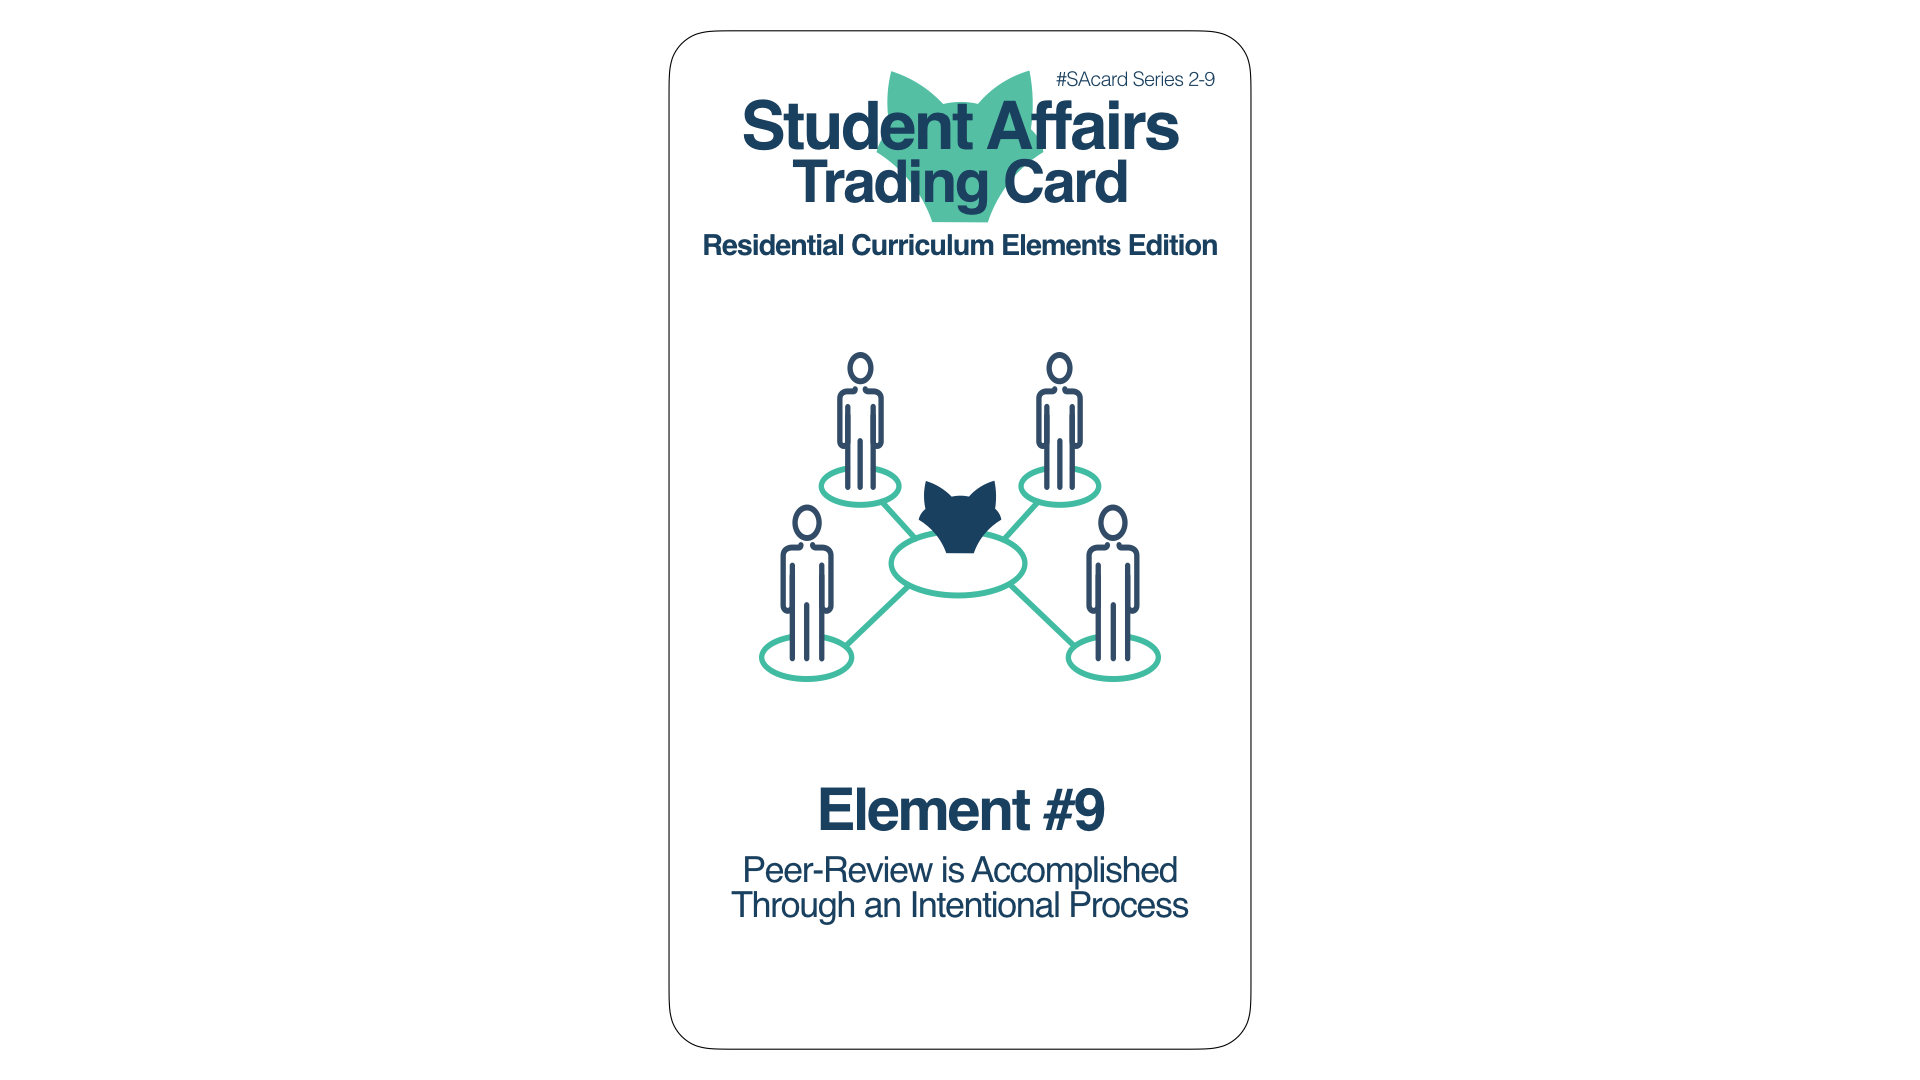 Student Affairs Trading Card 2-9: Residential Curriculum Element 9